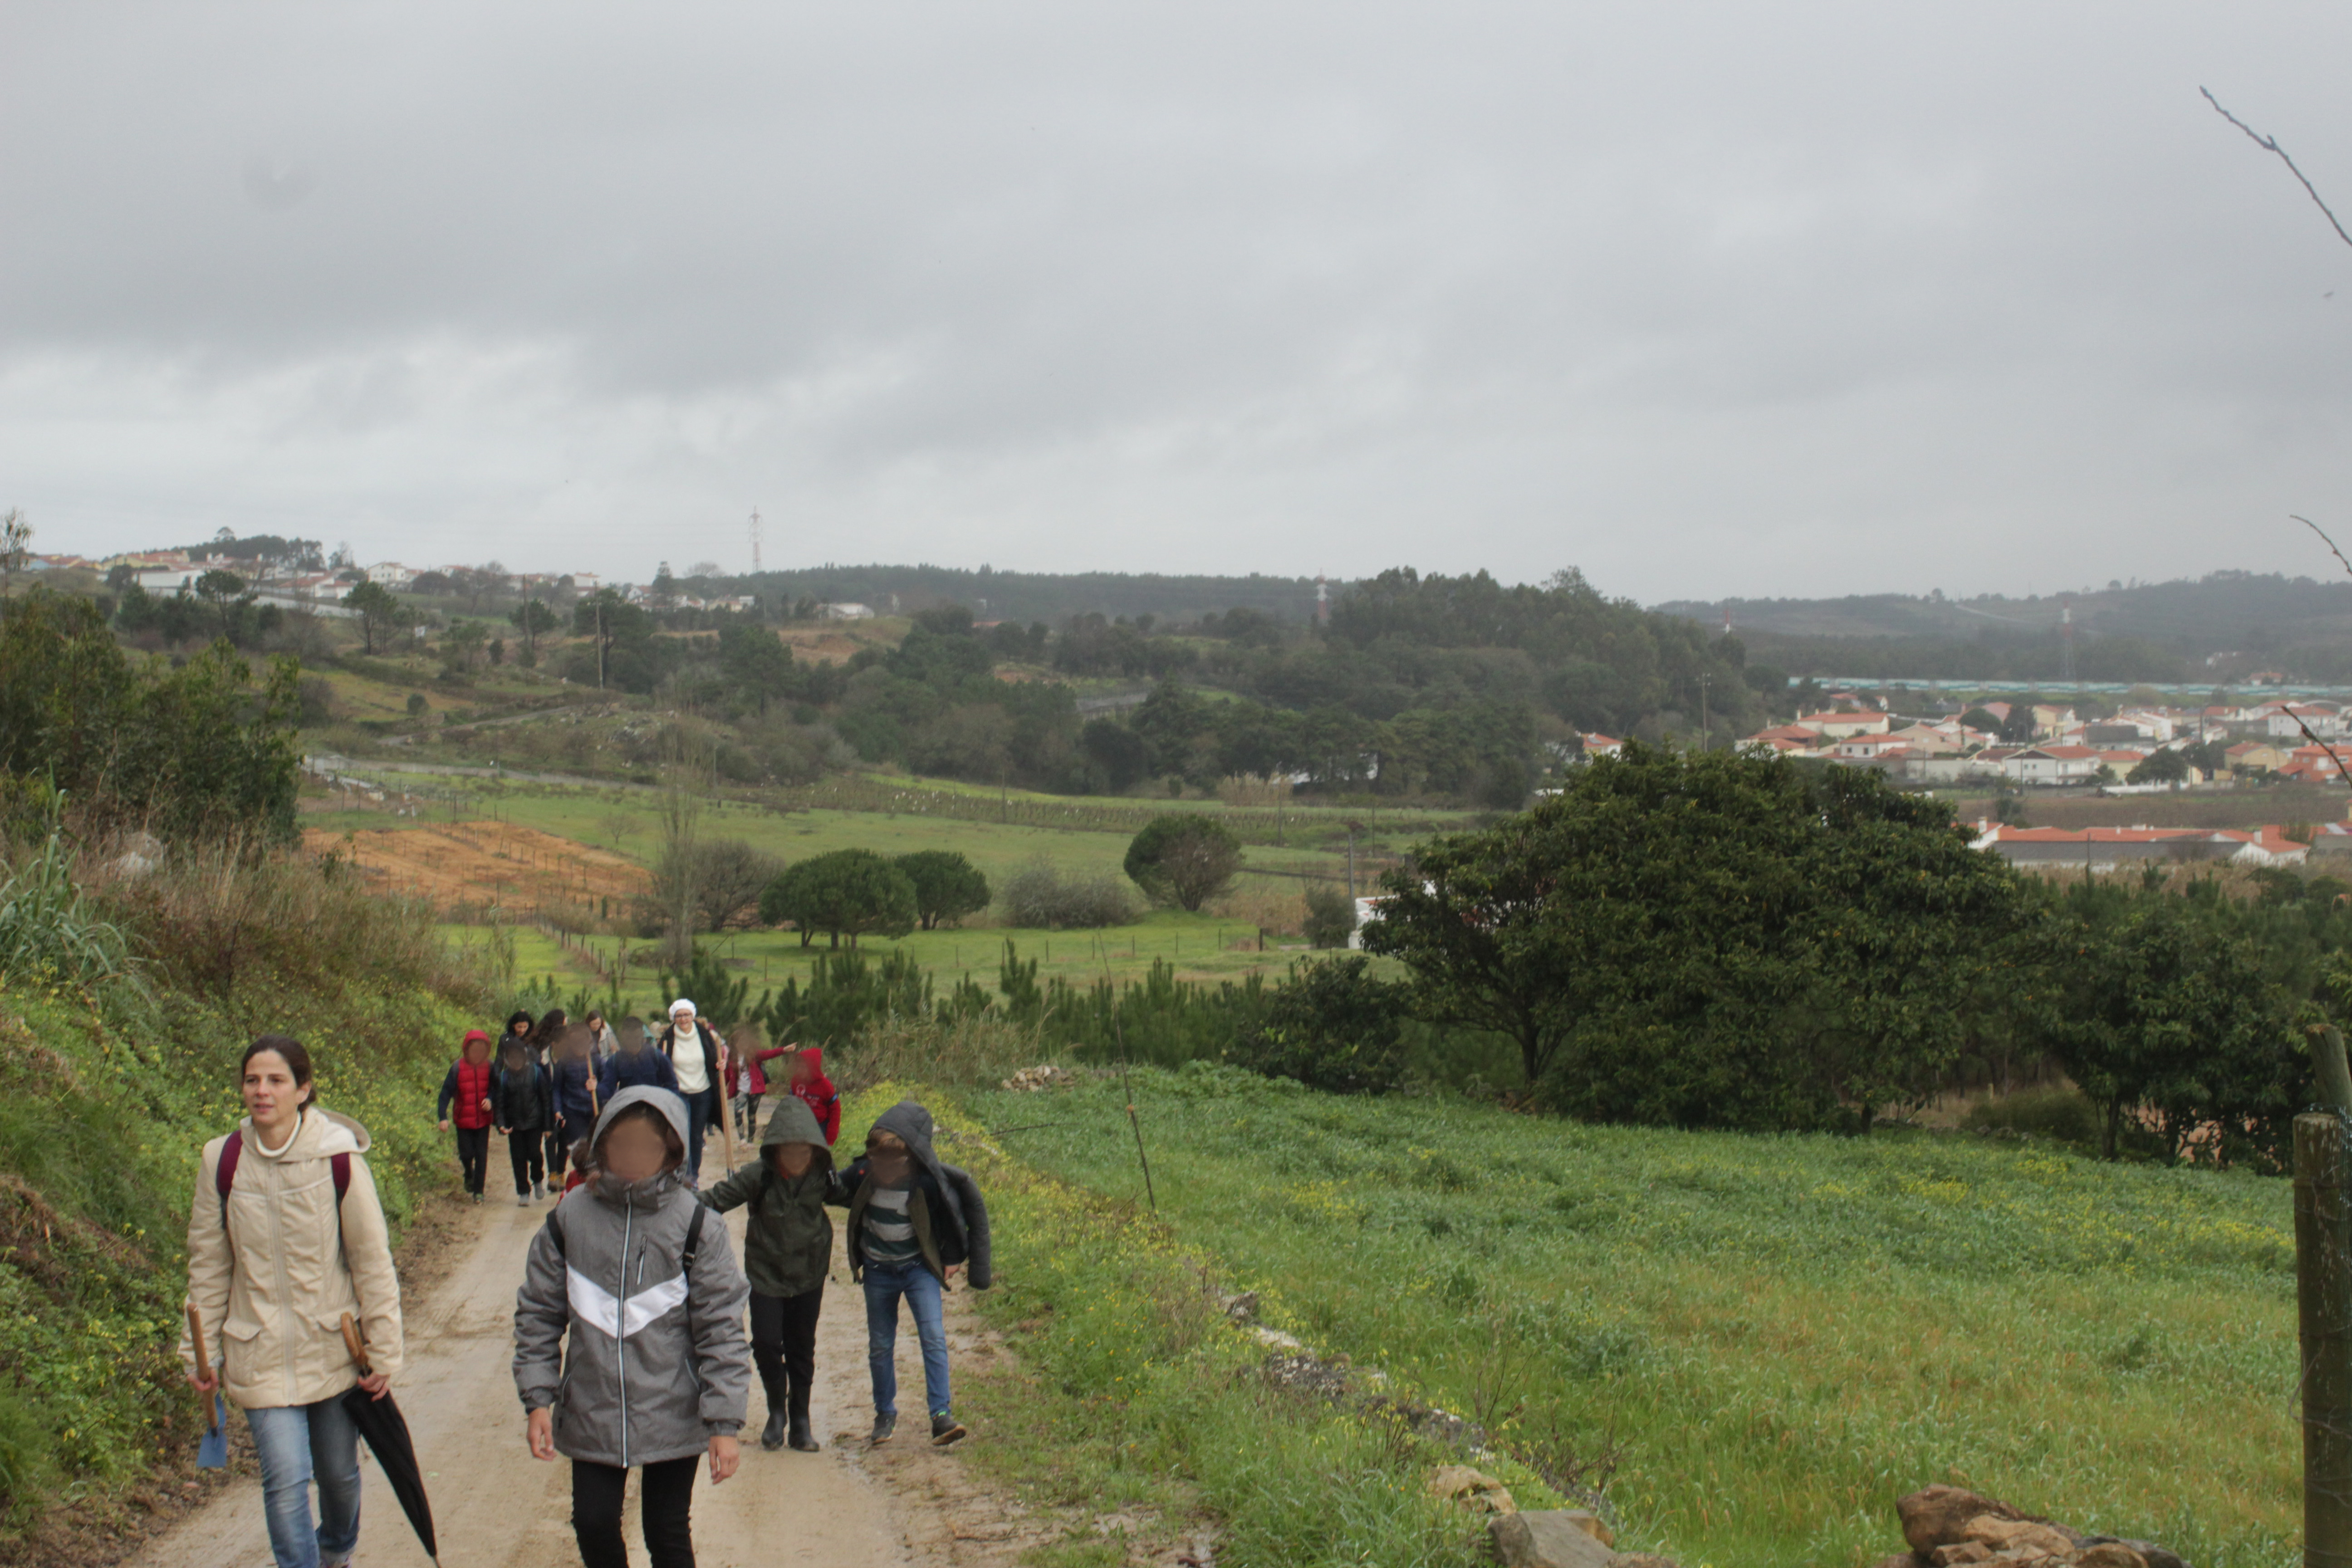 Walking up to the hills